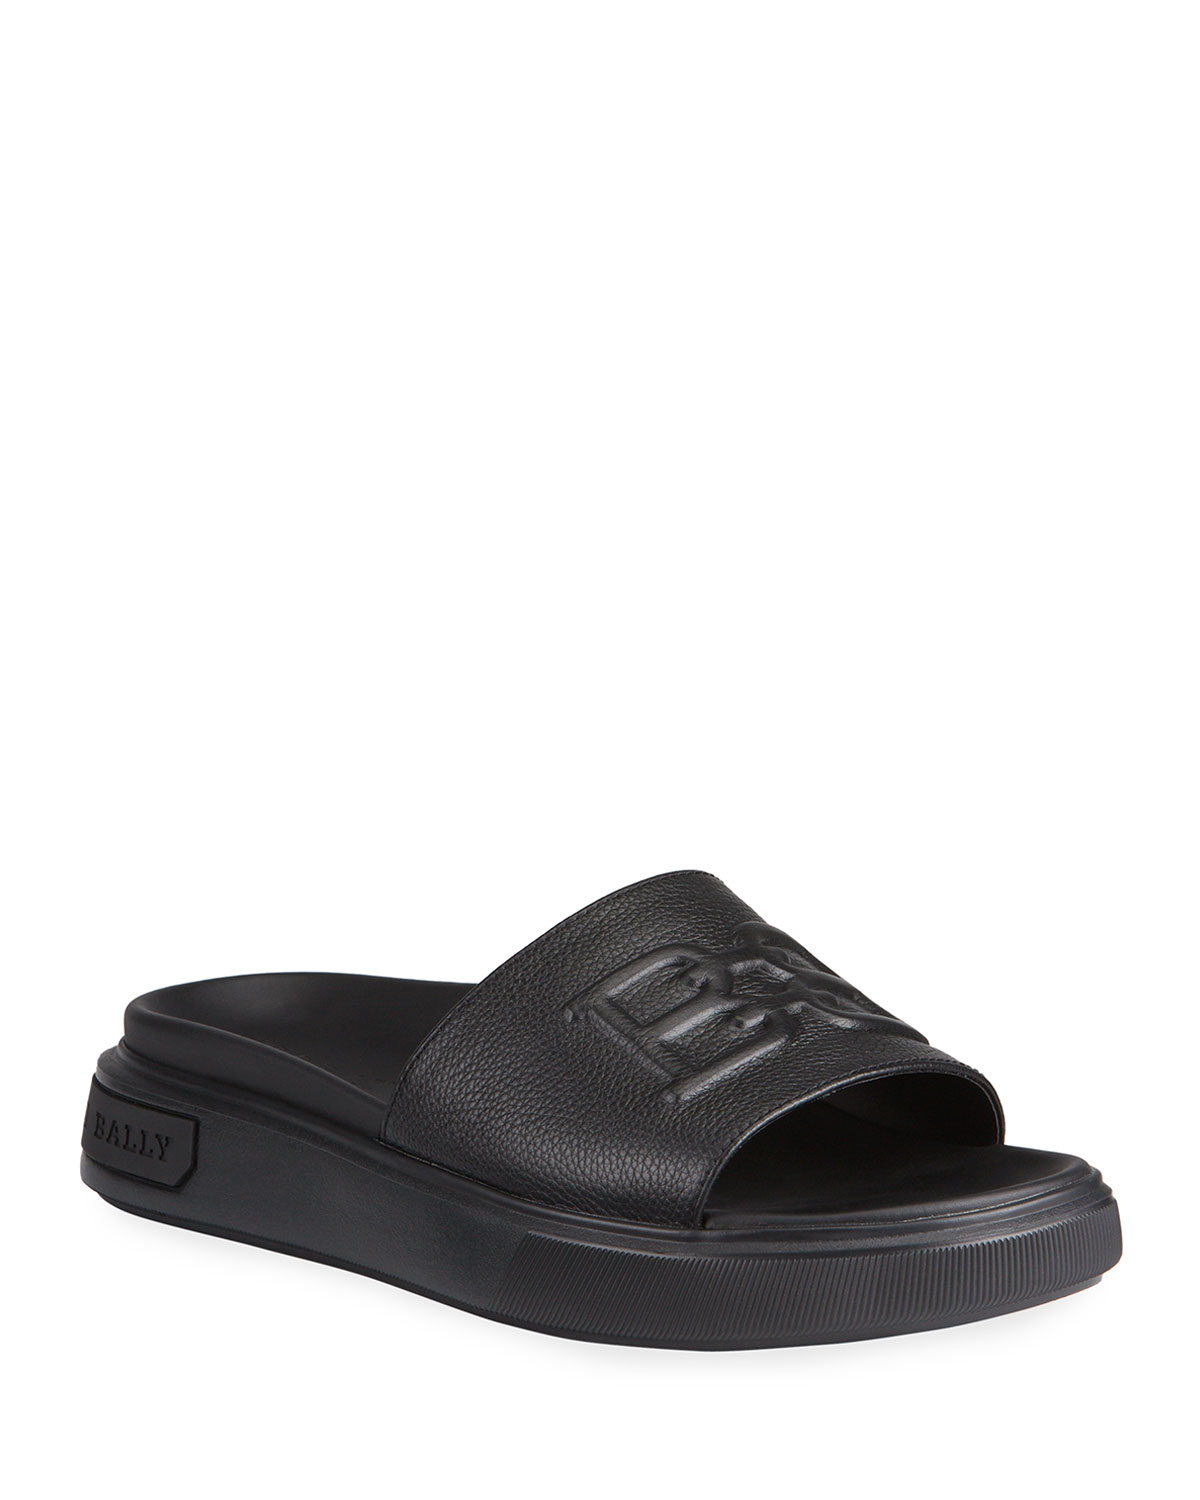 Bally MEN'S JARMO B-CHAIN EMBOSSED LEATHER SLIDE SANDALS